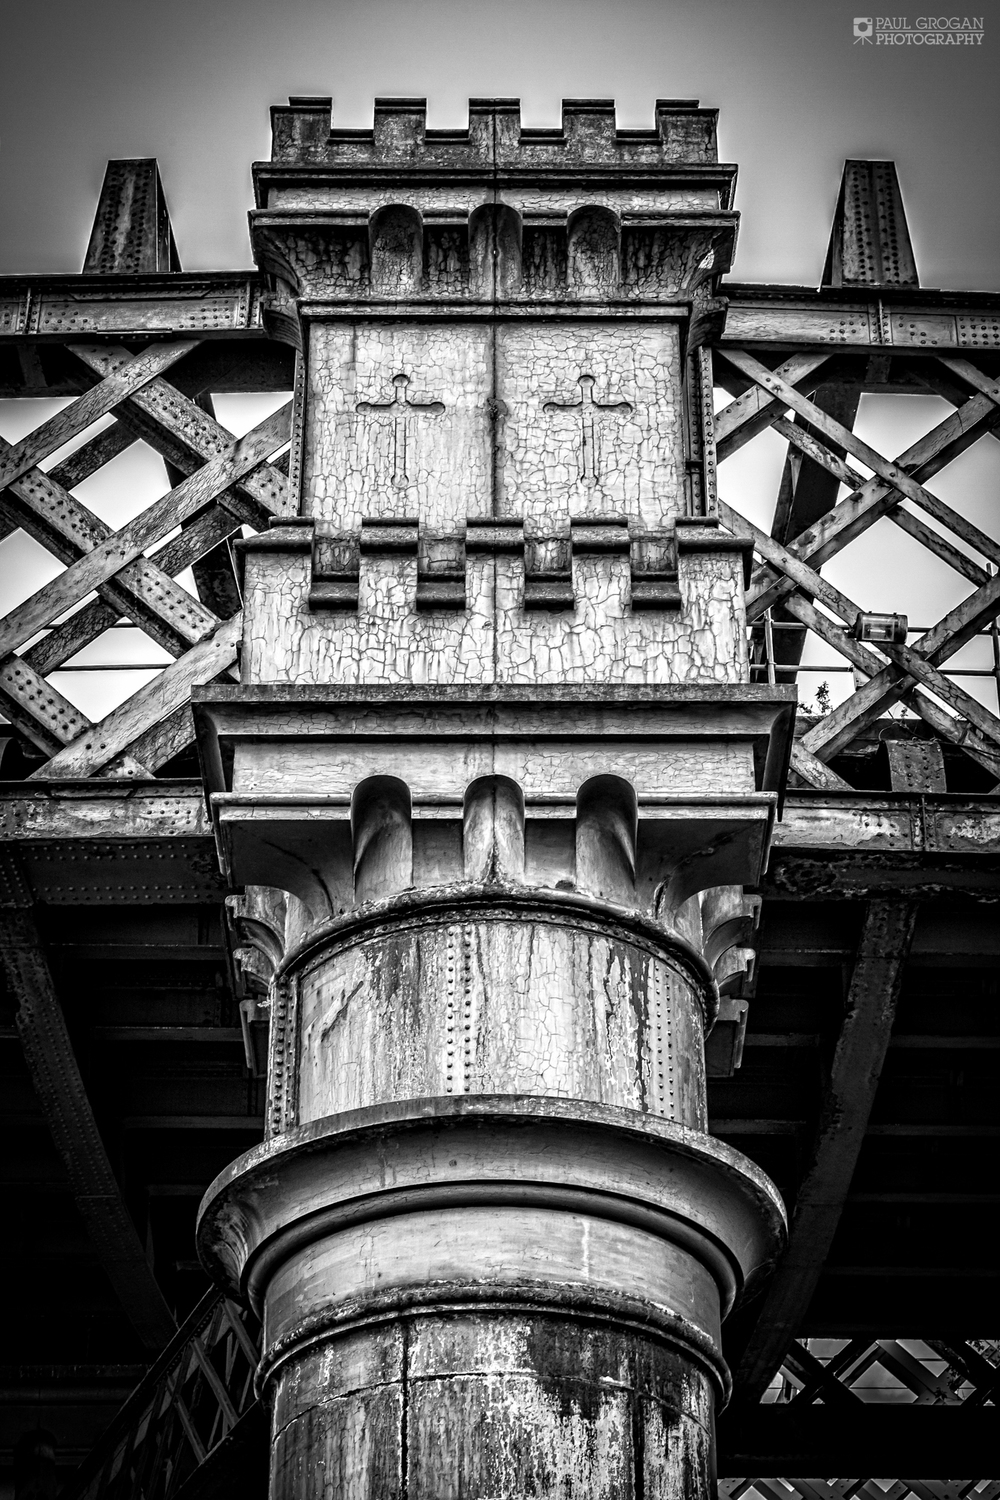 Build in 1894 this predominently wrought iron viaduct is a through lattice girder design of around 330m in length, comprising eight spans. It carried trains in and out of Manchester Central (now known as GMEX) until the station's closure in 1969.